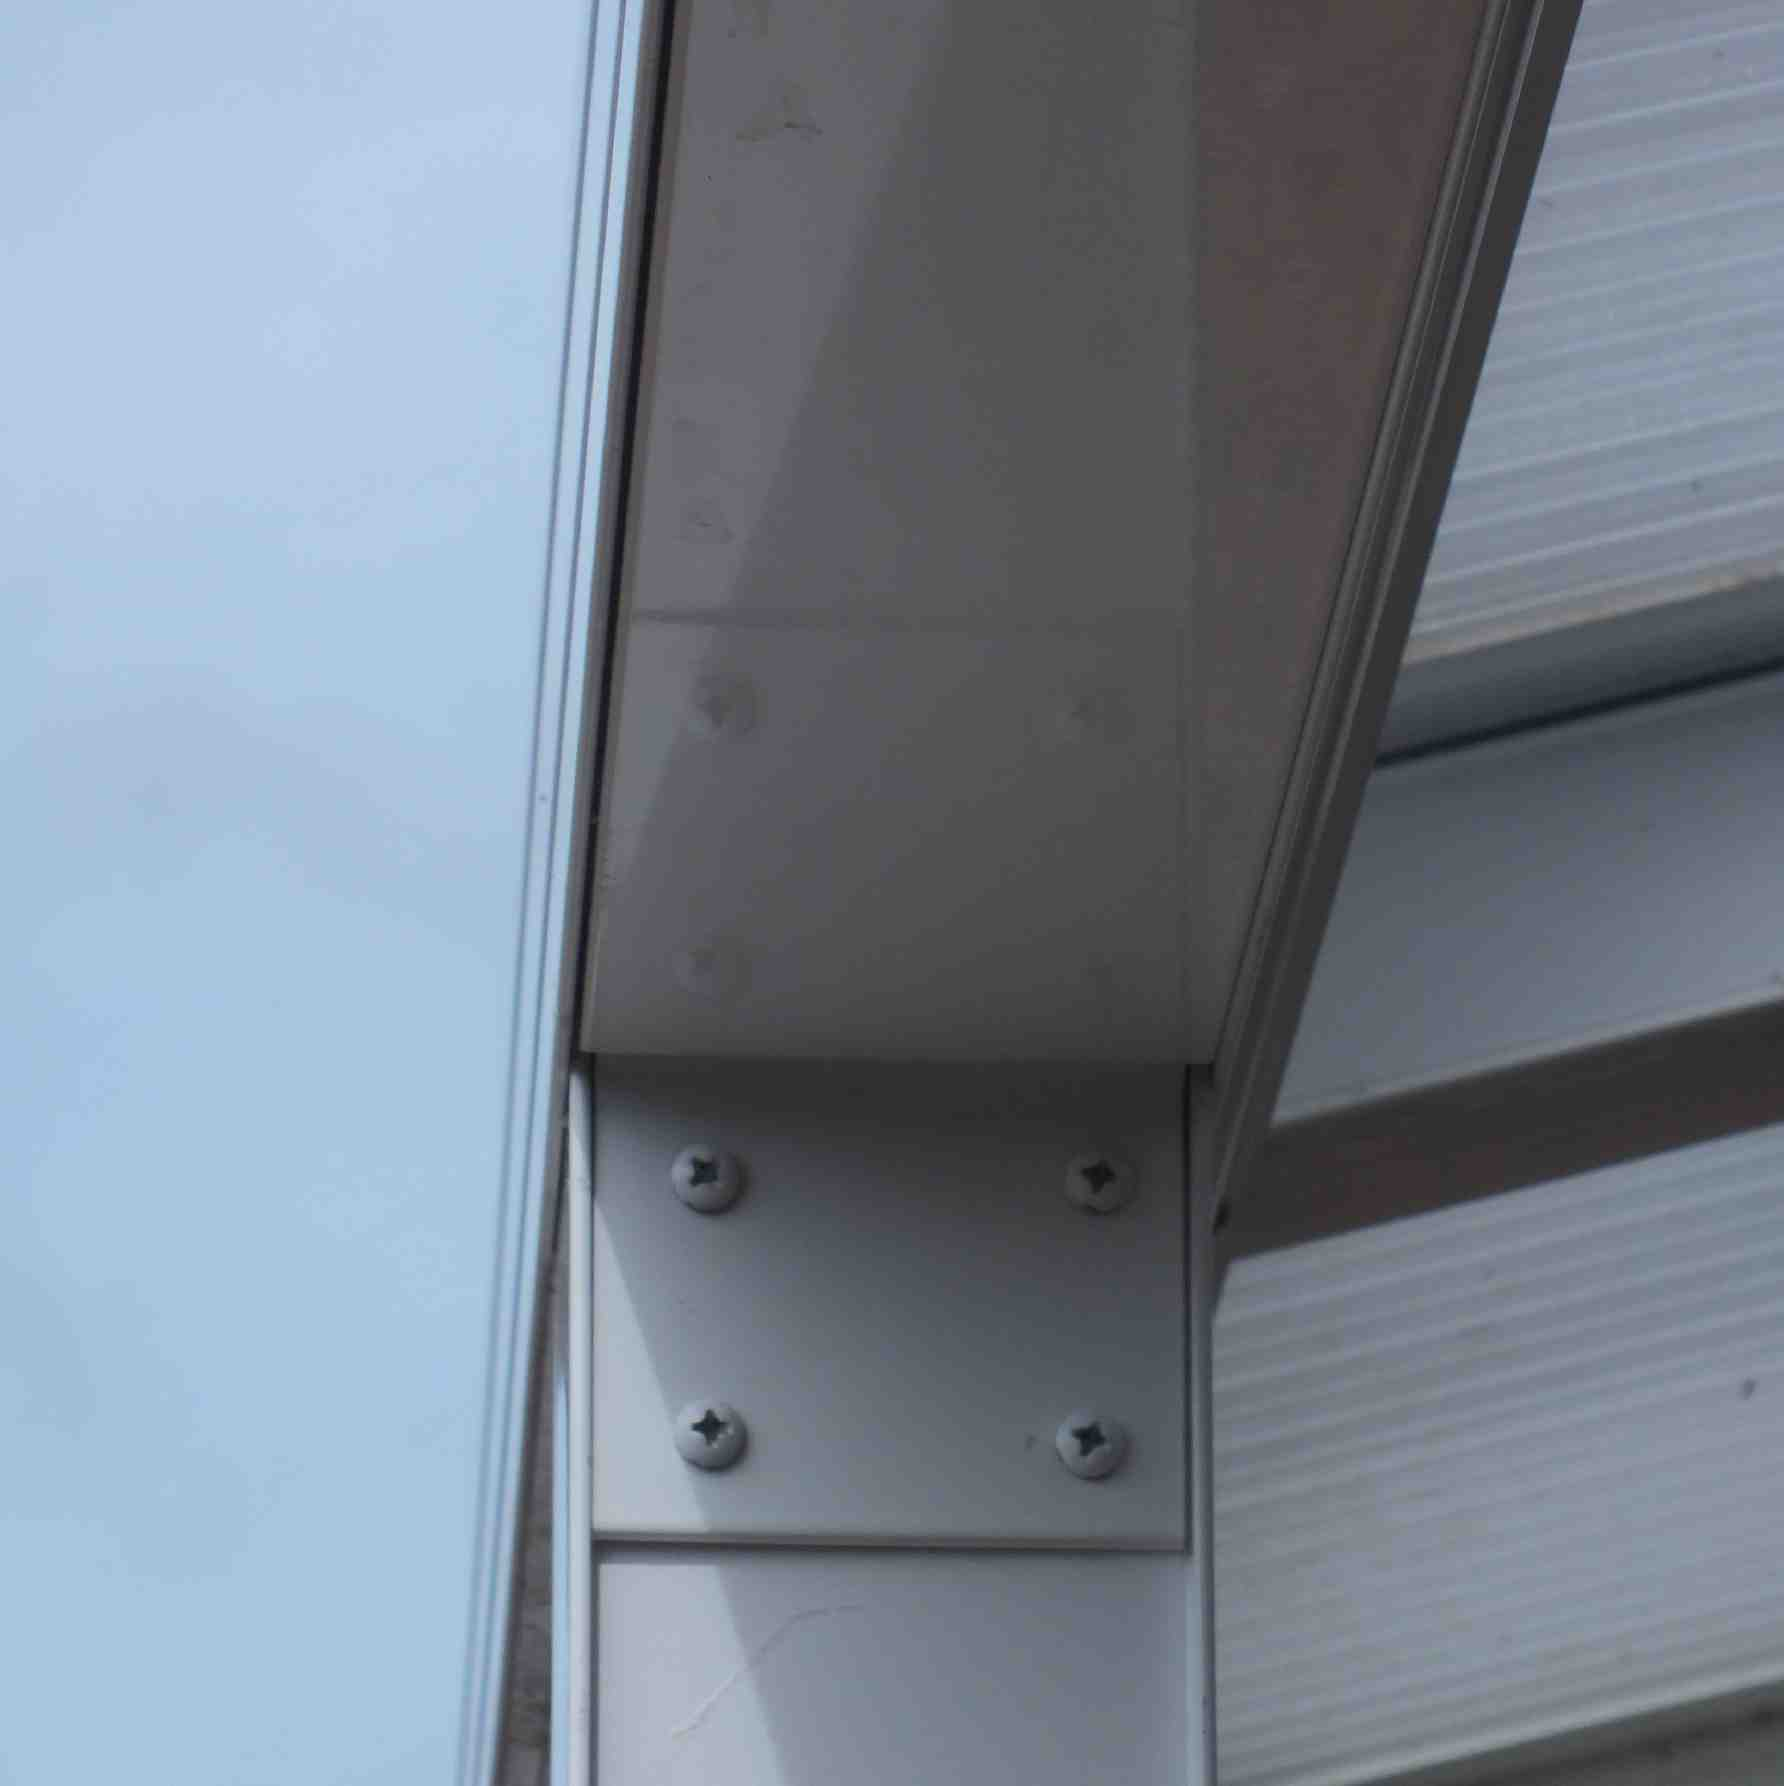 Affordable Omega Verandah with 6mm Glass Clear Plate Polycarbonate Glazing - 8.4m (W) x 2.5m (P), (4) Supporting Posts